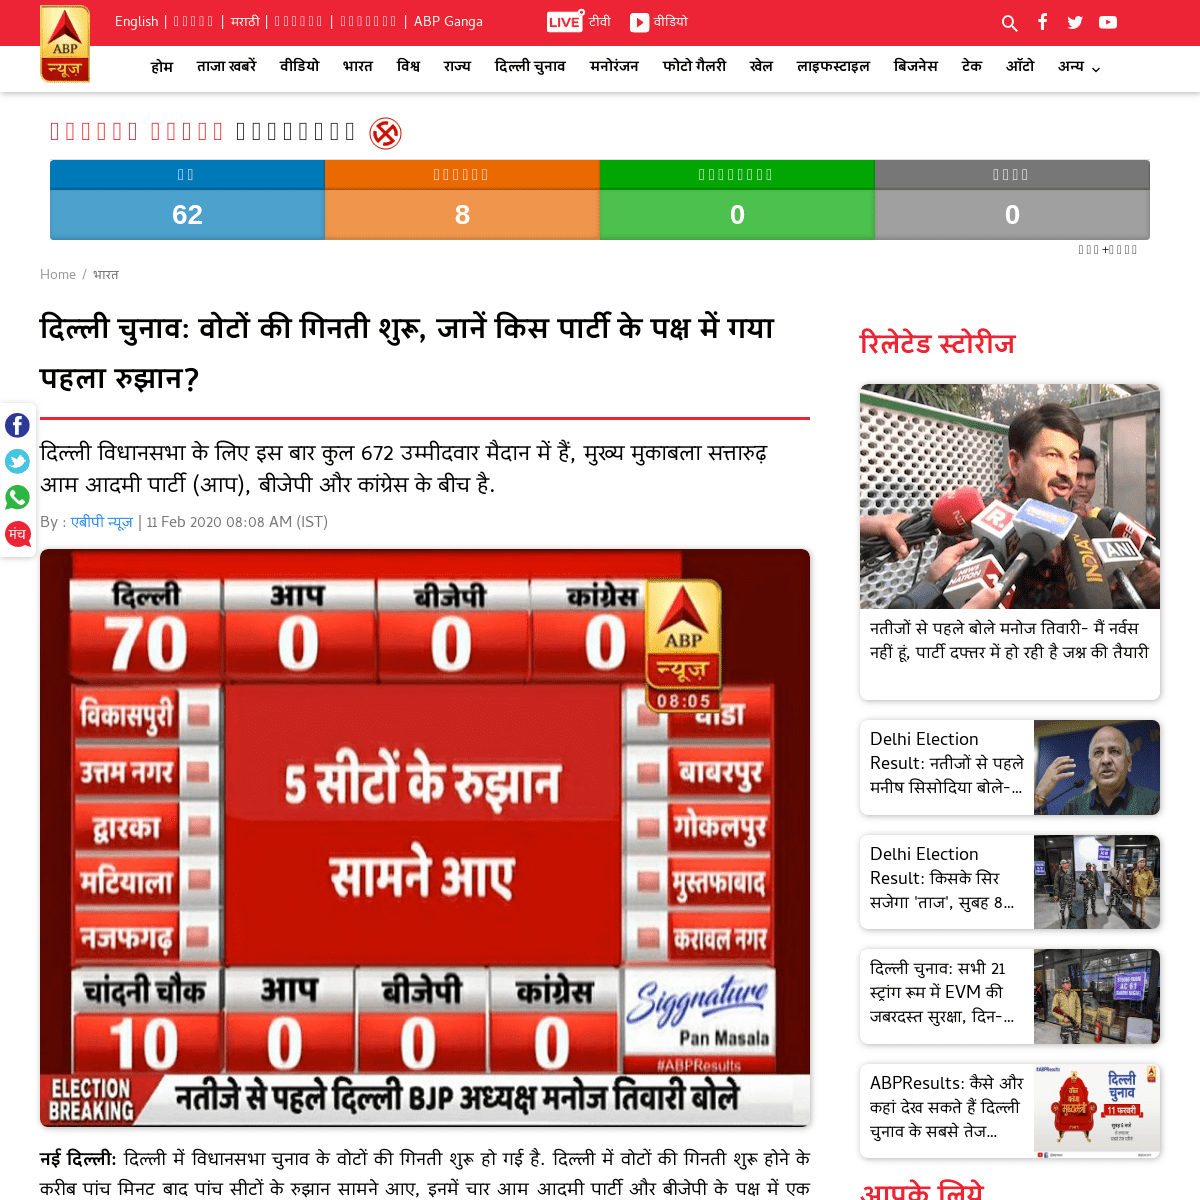 Voting Begin In For Delhi Election, First Trend Goes In Favour Of Aam Admi Party - दिल्ली चुनाव- वोट